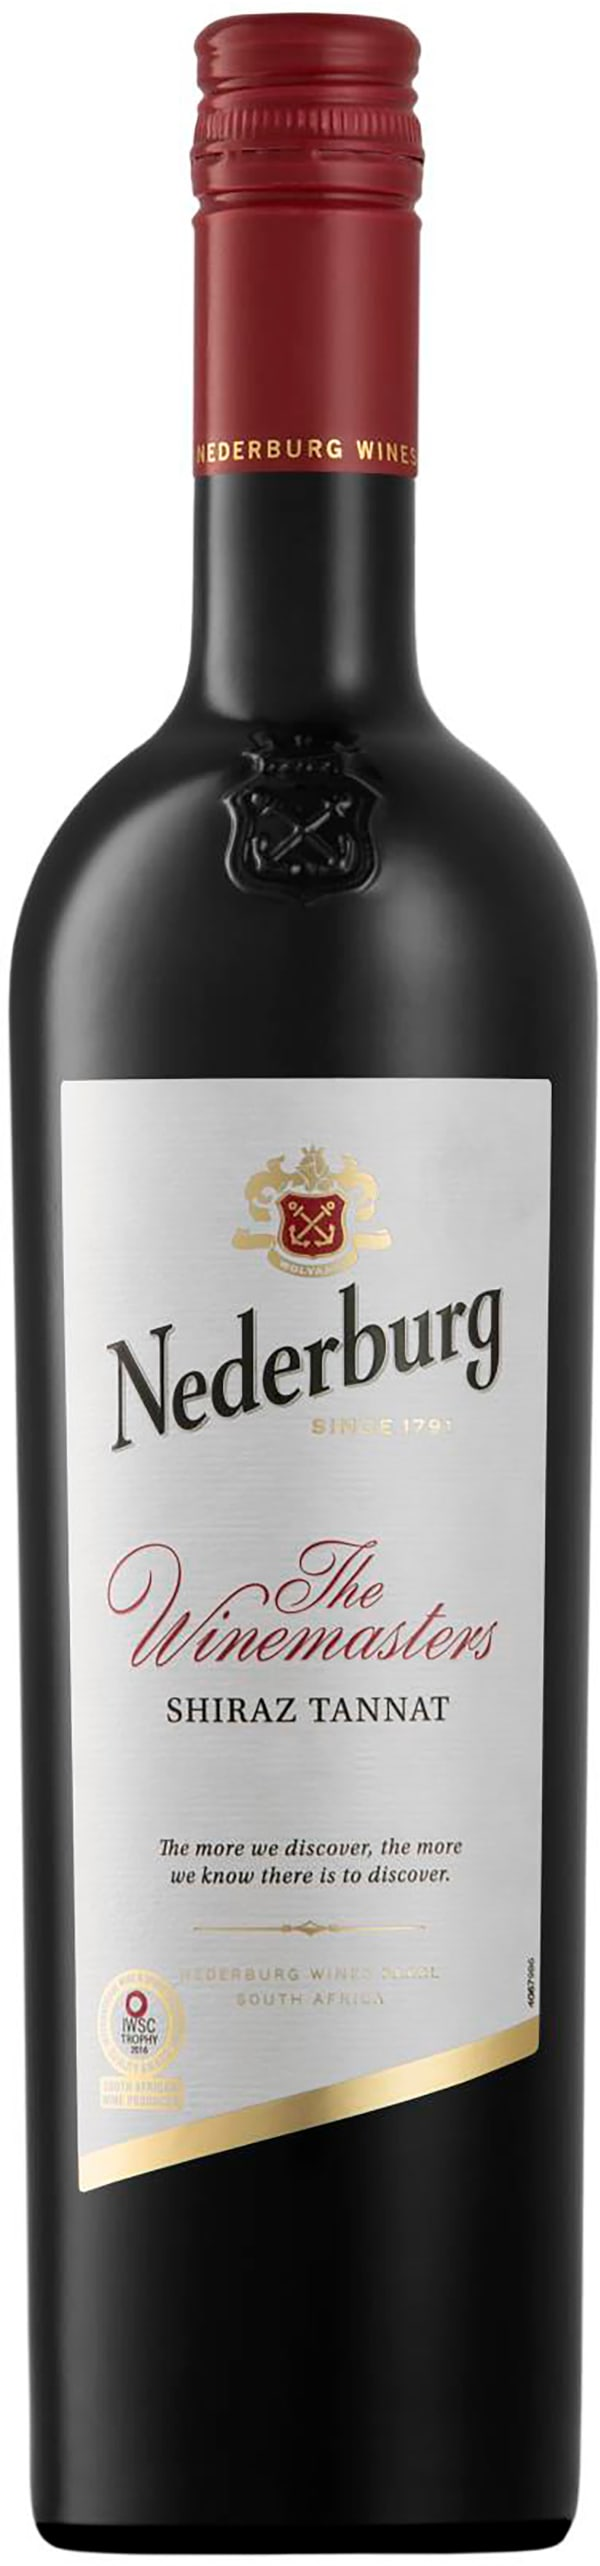 Nederburg The Winemasters Shiraz Tannat 2017